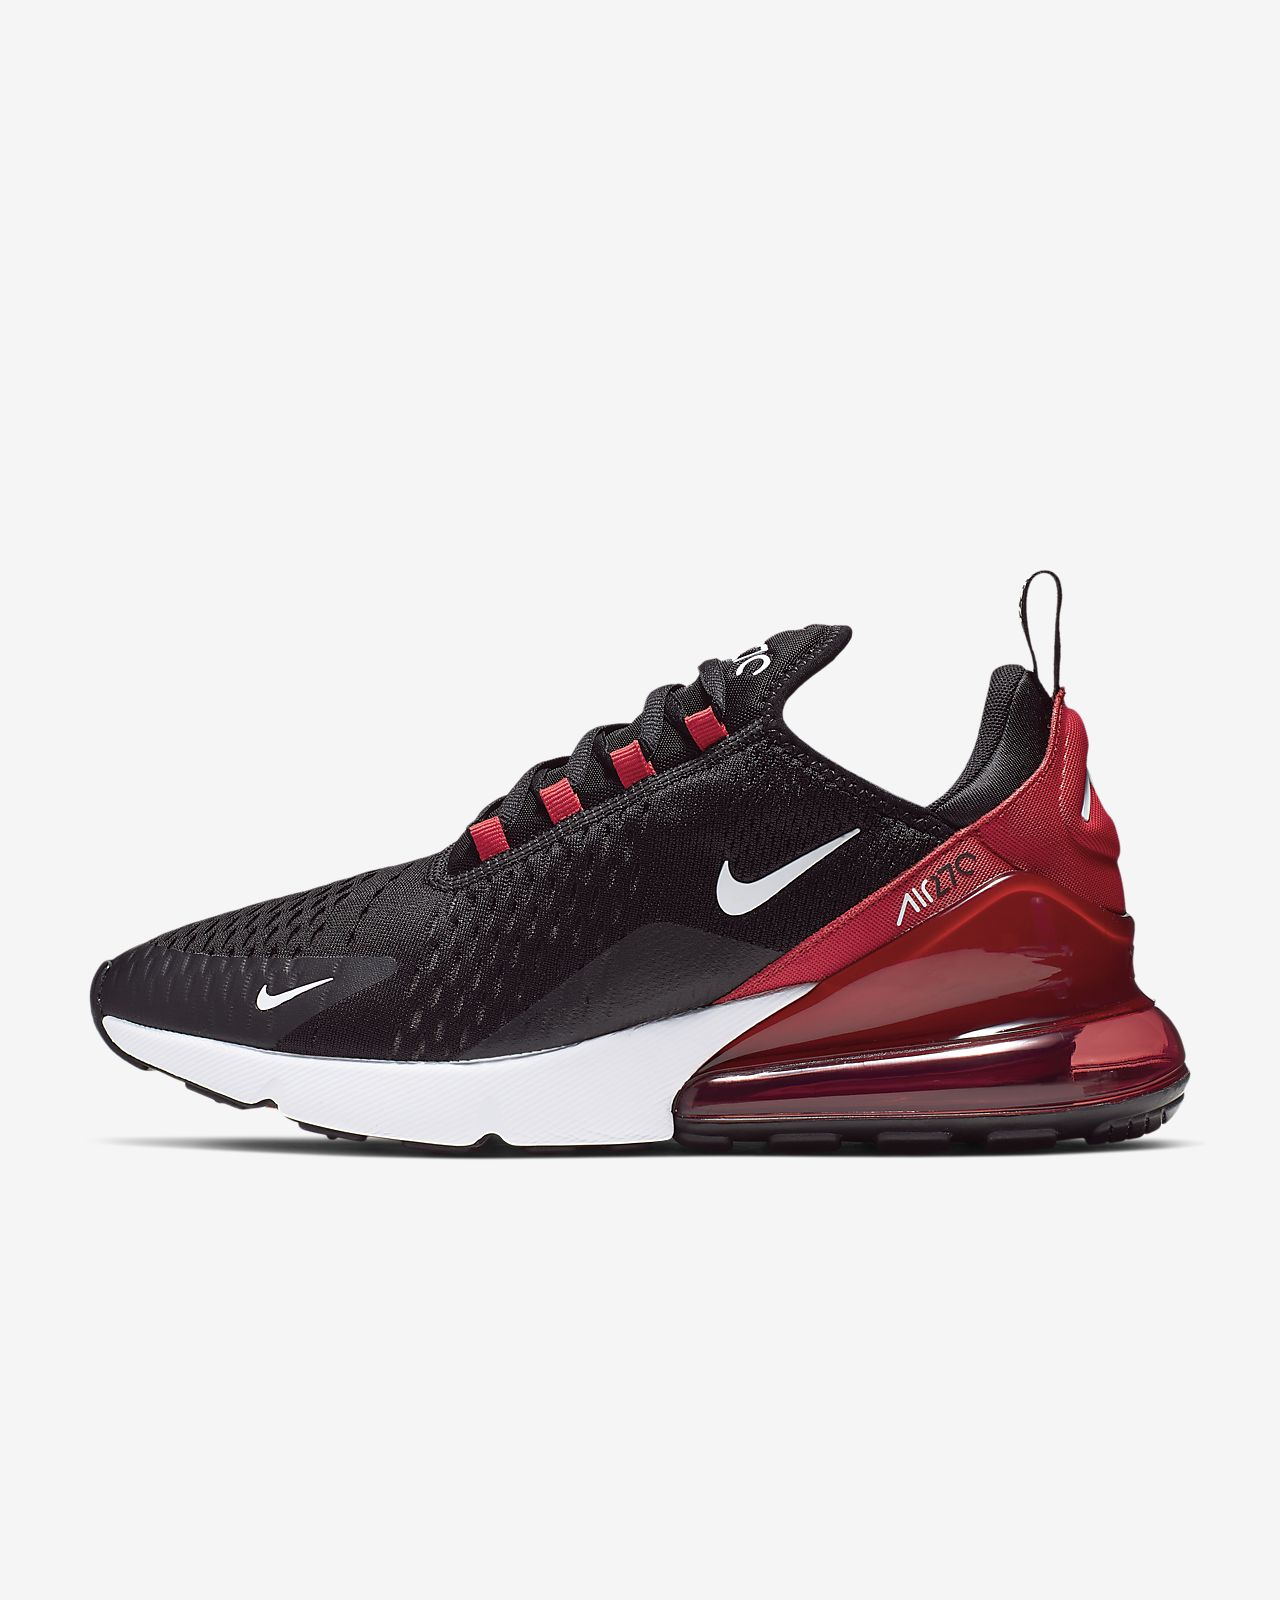 3f7892b85467 Nike Air Max 270 Men s Shoe. Nike.com GB